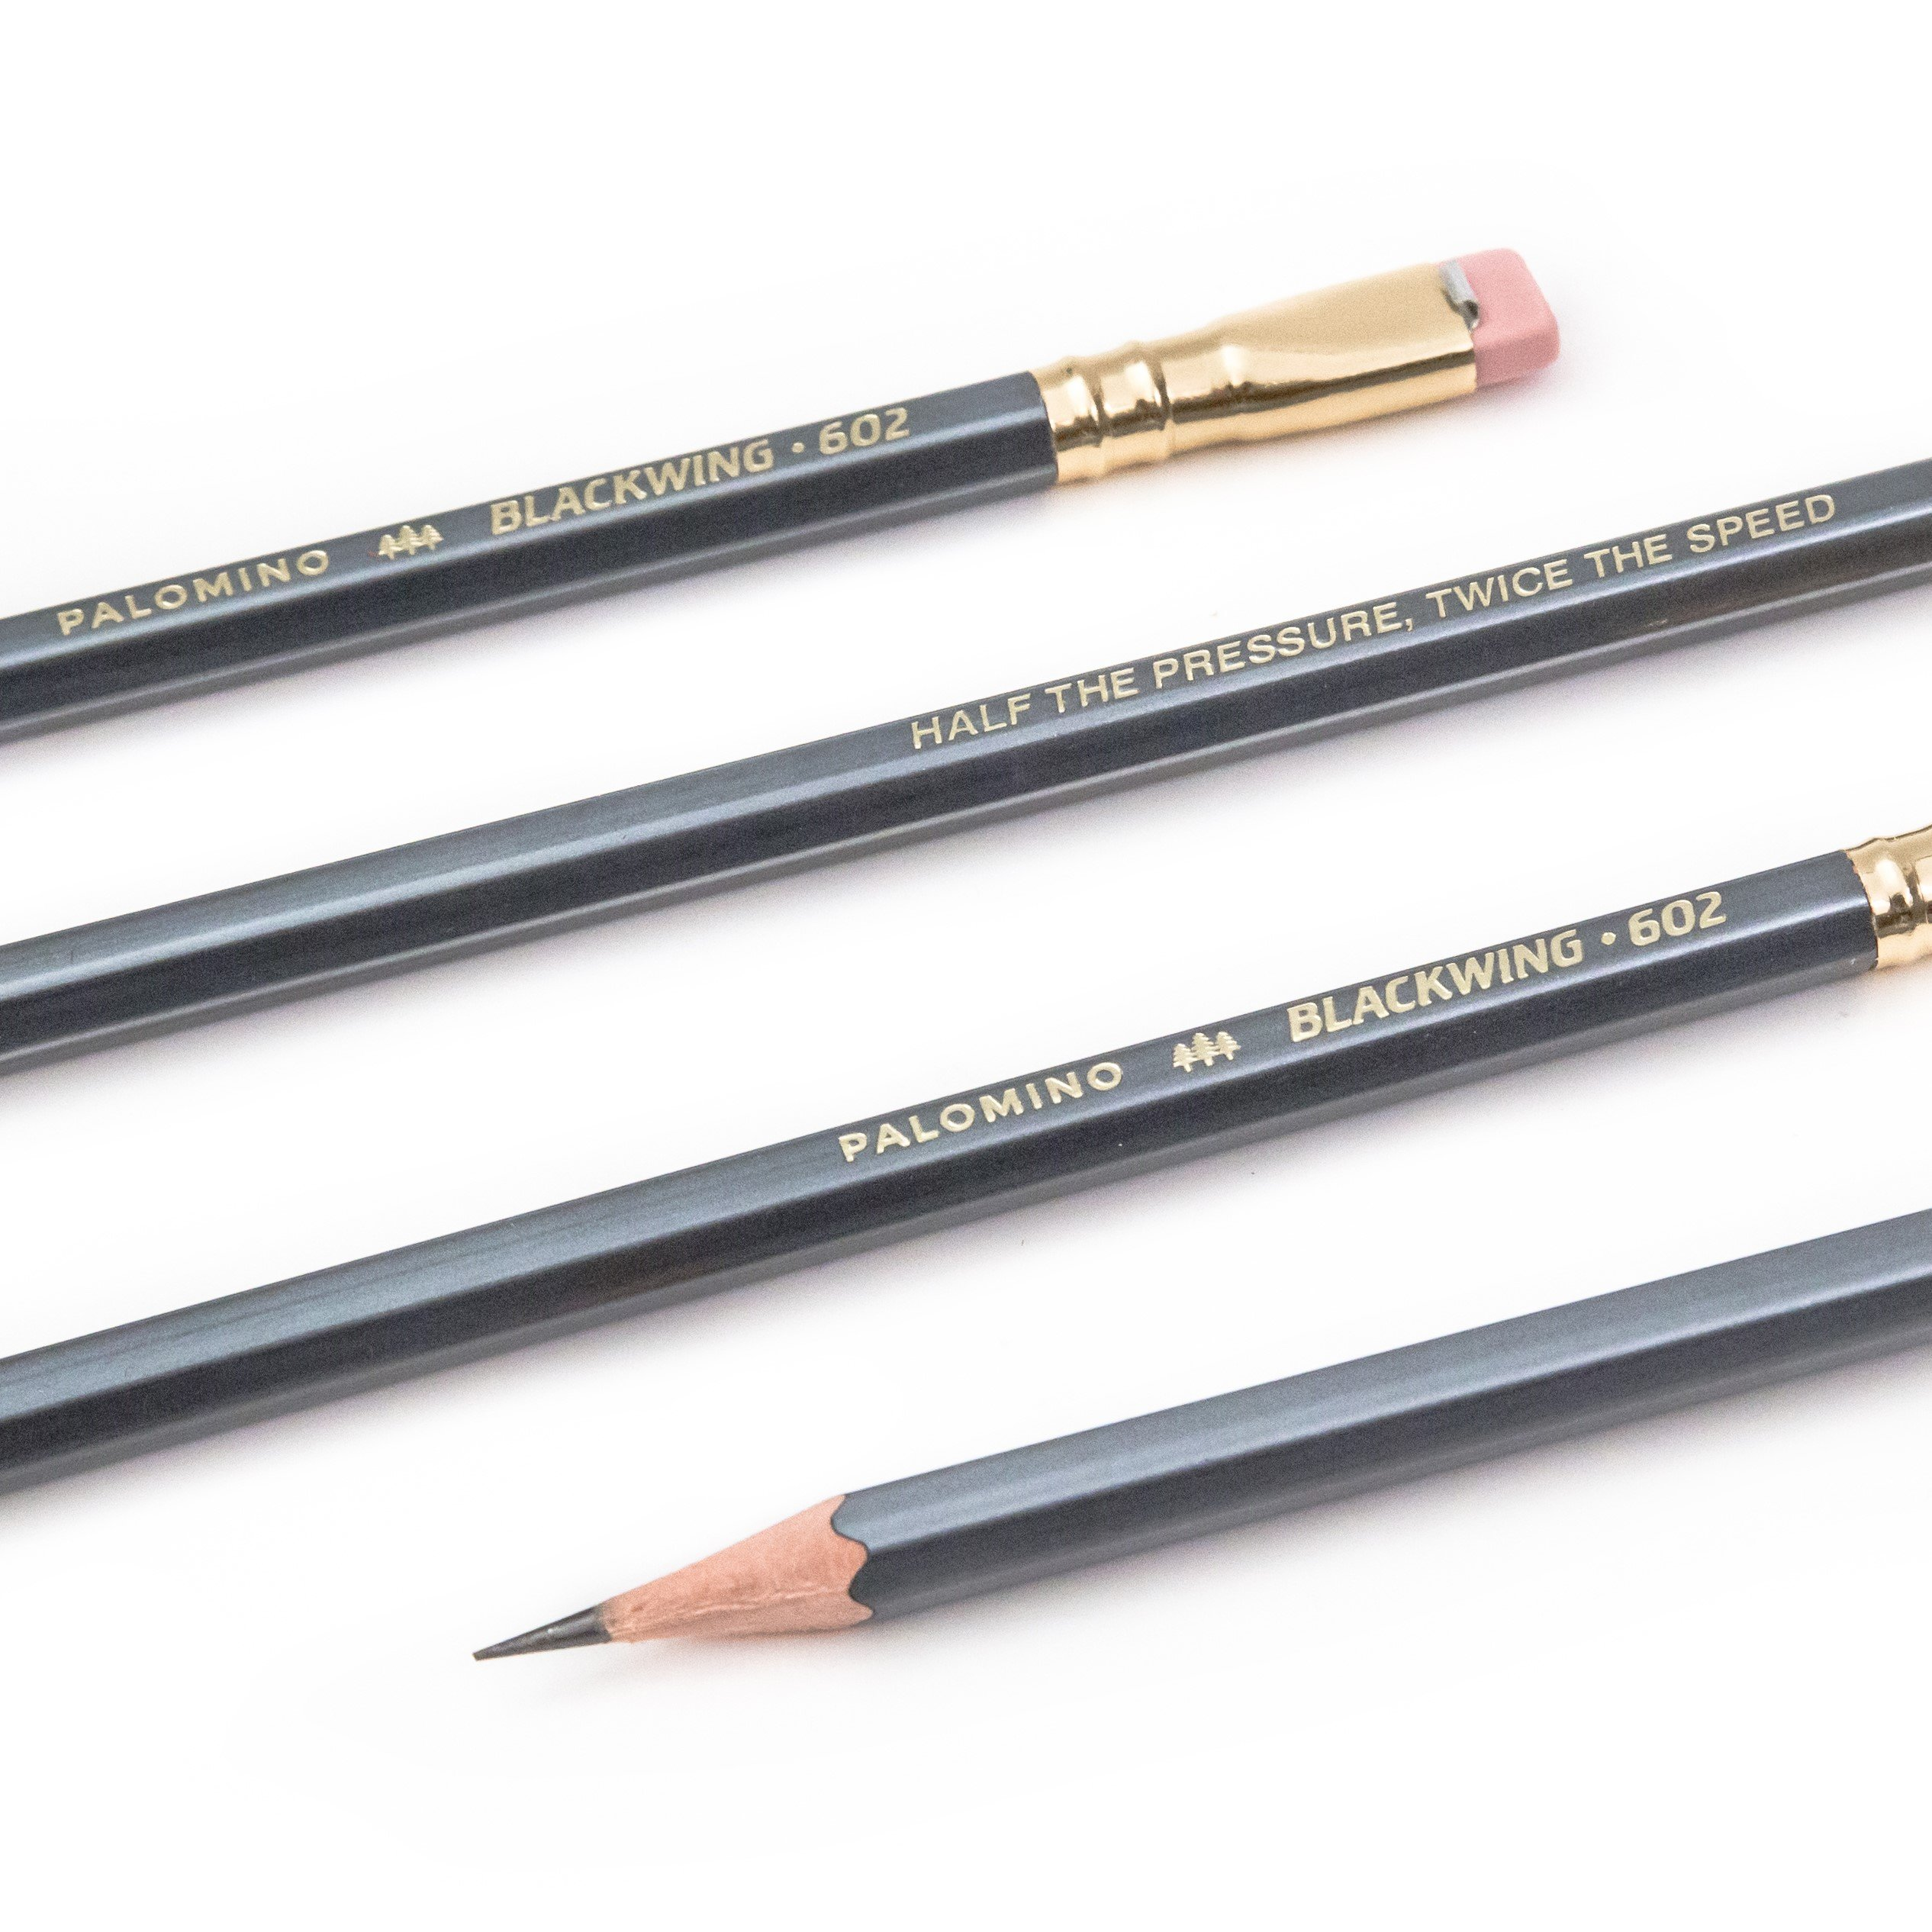 Palomino Blackwing 602-12 Count by Blackwing